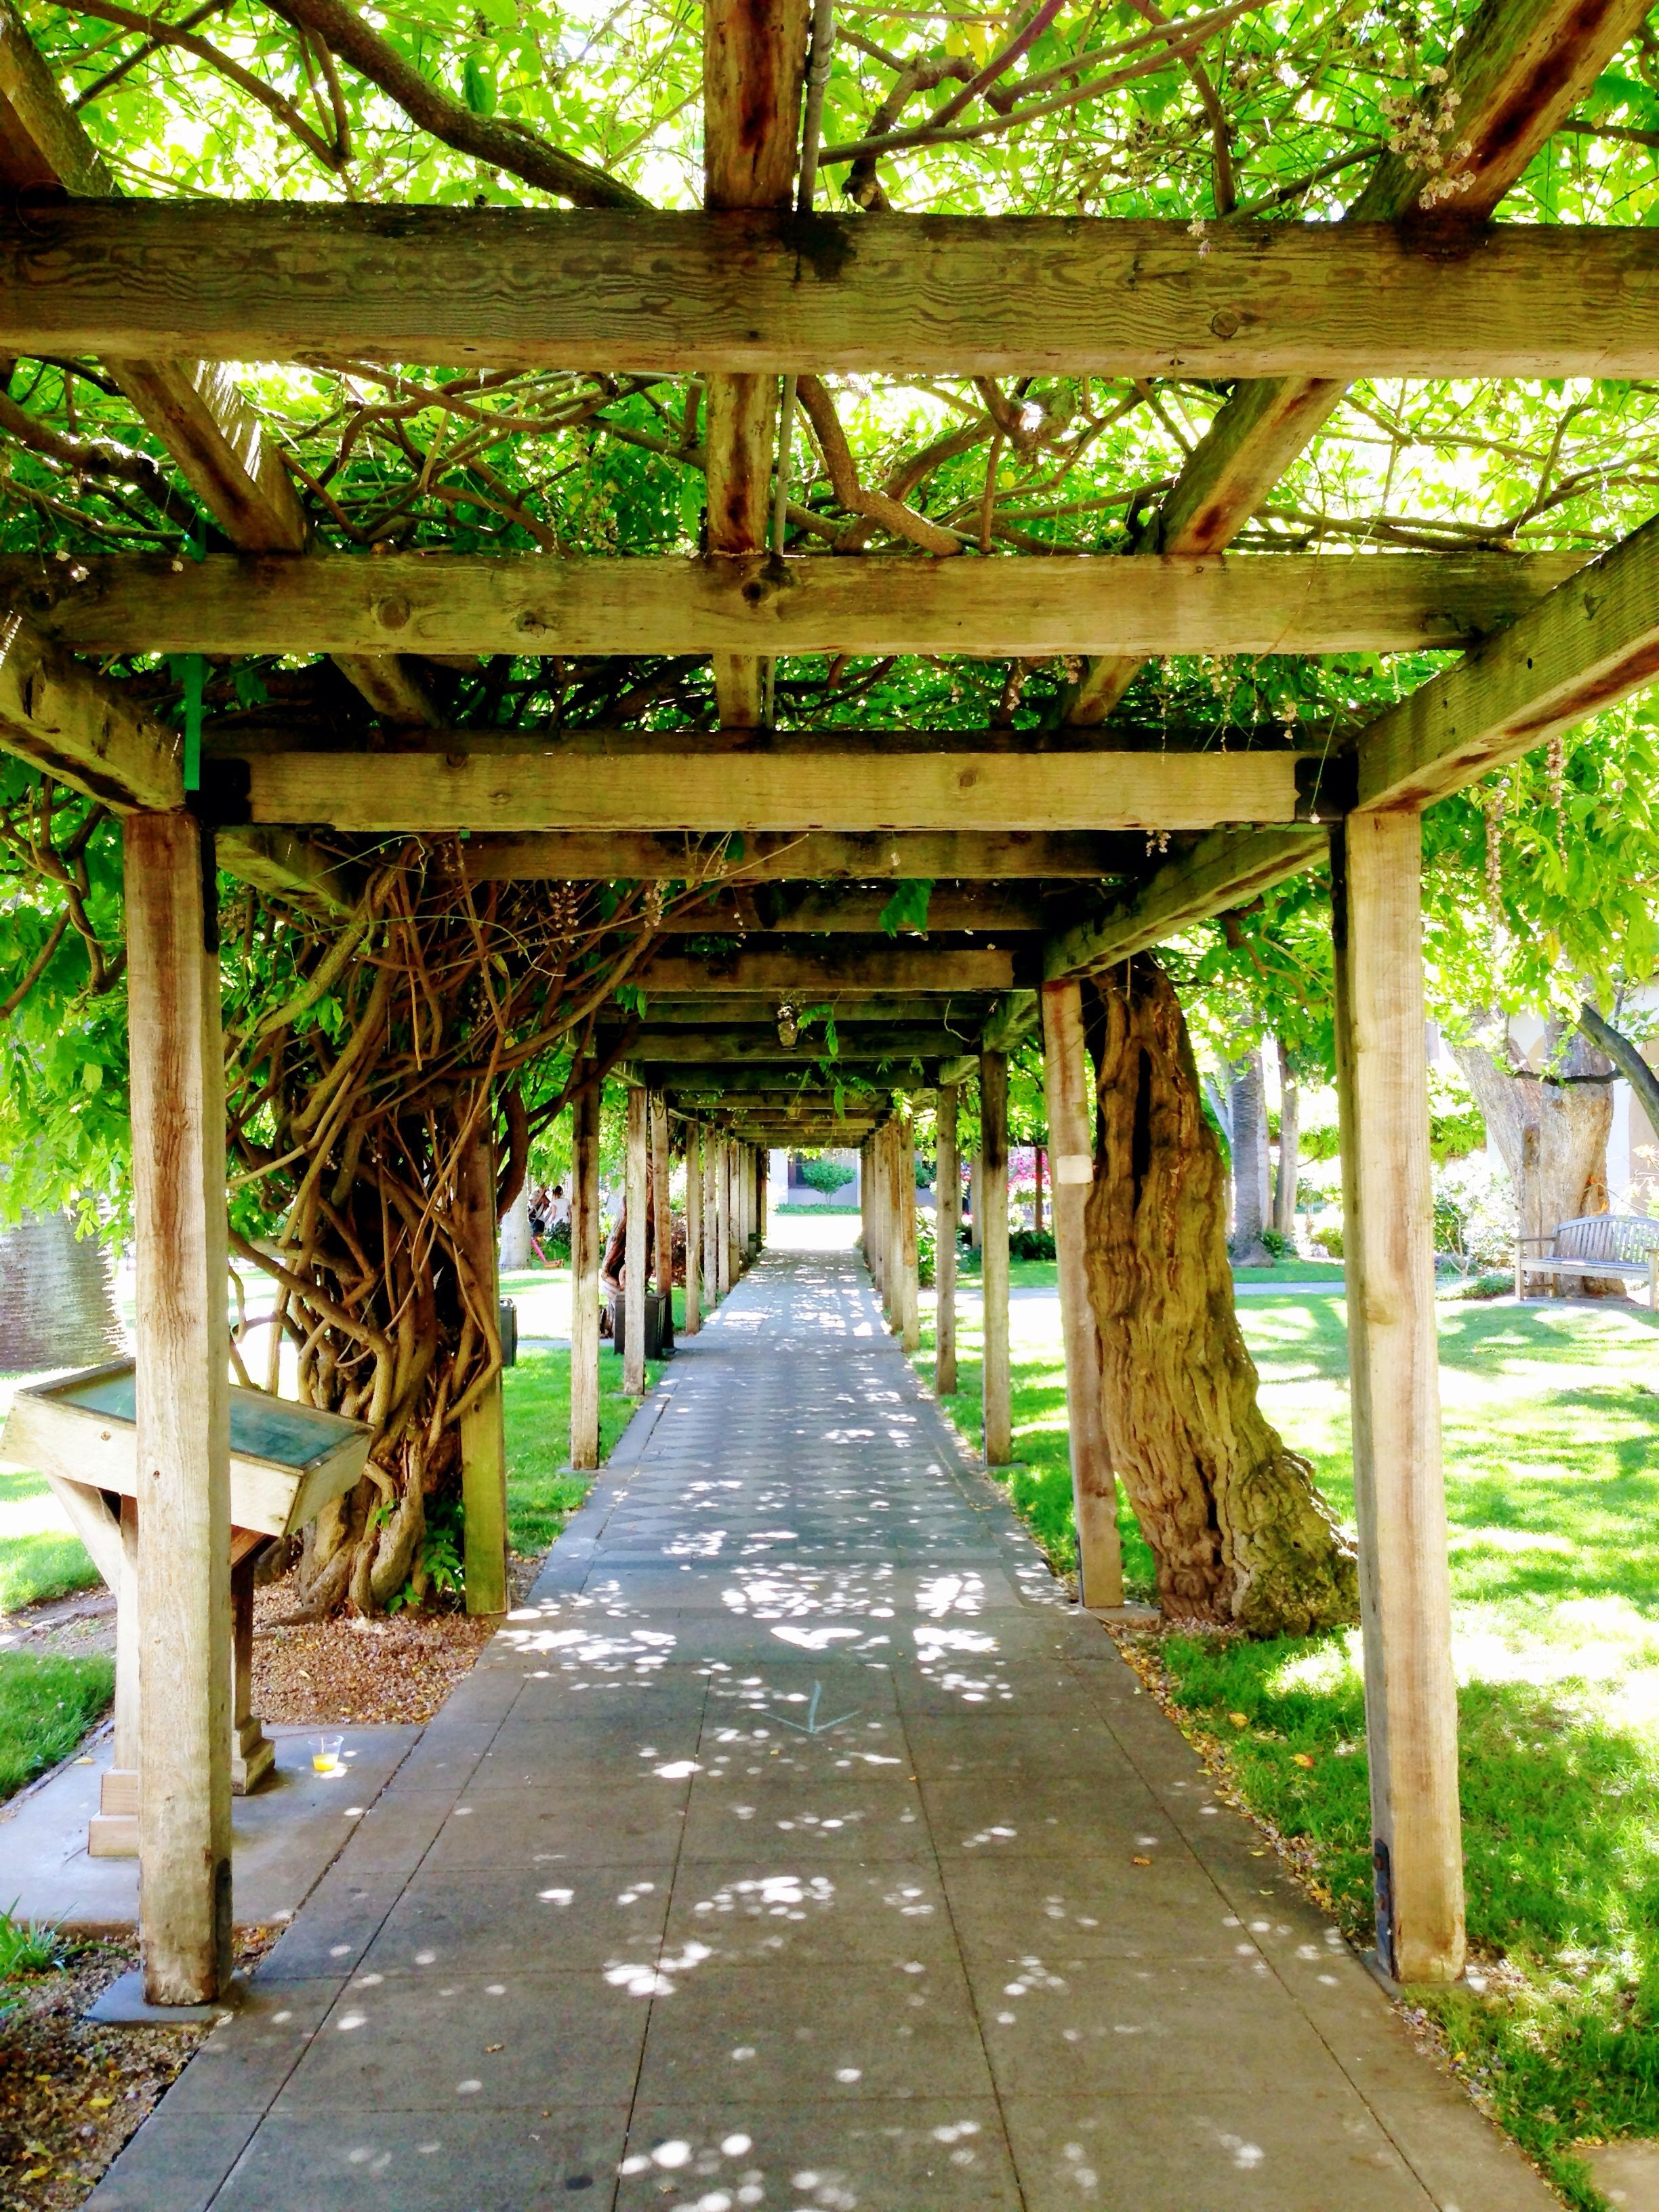 The Pathway Under The Wisteria In The Mission Gardens